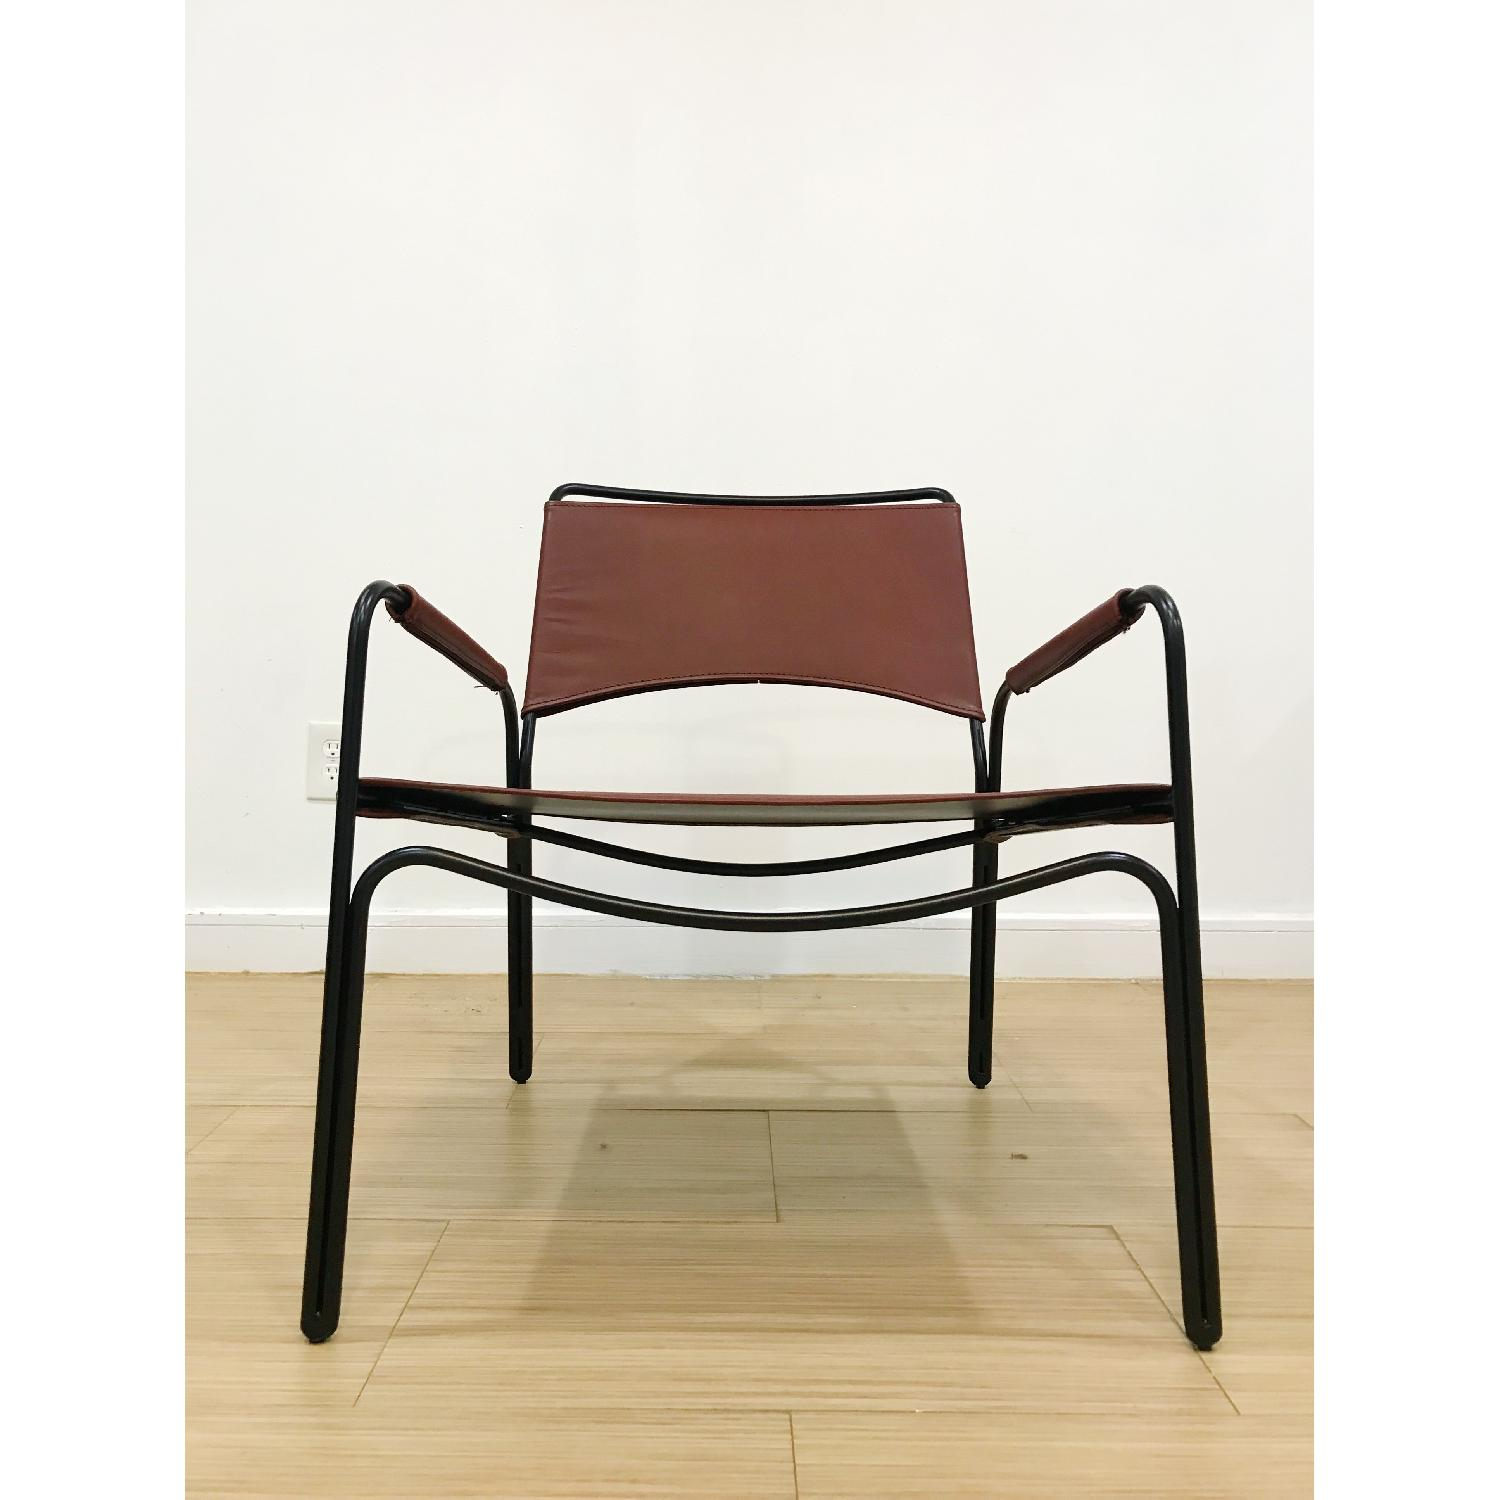 m.a.d Furniture Design Trace Lounge Chair - image-2